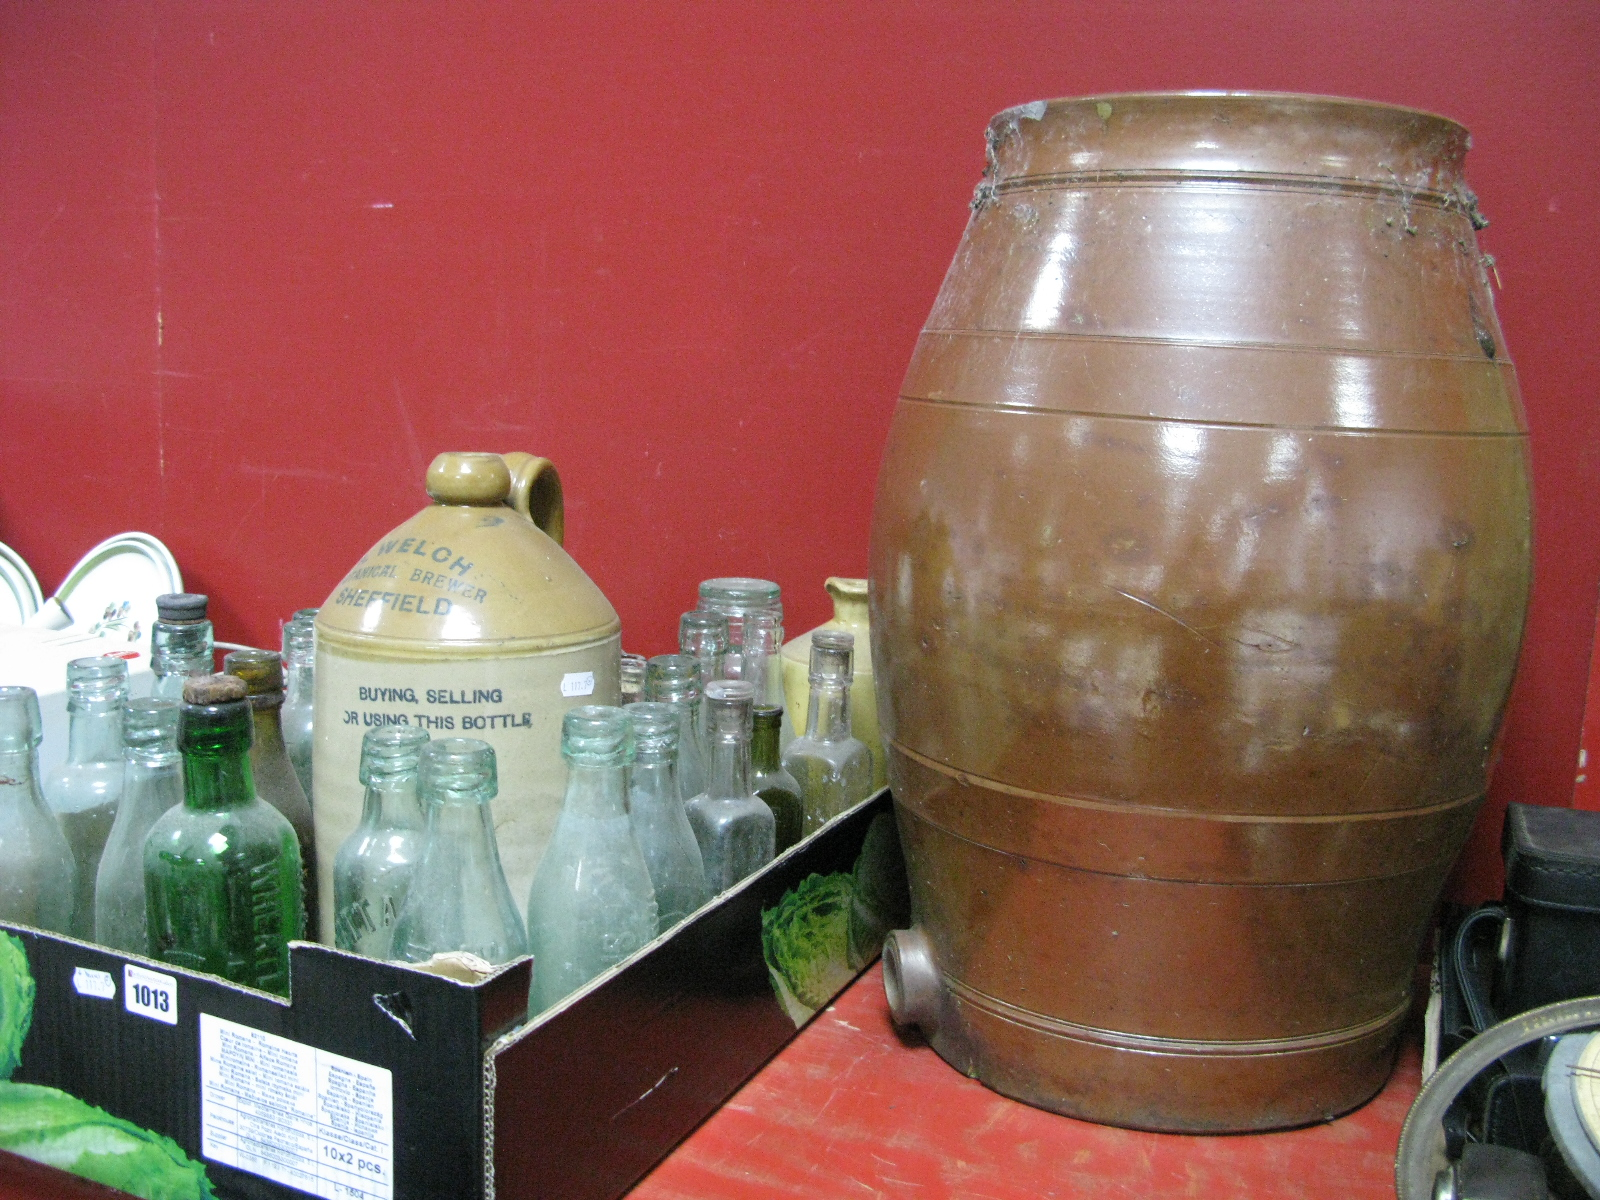 Lot 1013 - A Quantity of Vintage Beer, Table Water and Chemists Bottles and Jars, HP and Daddies sauce included